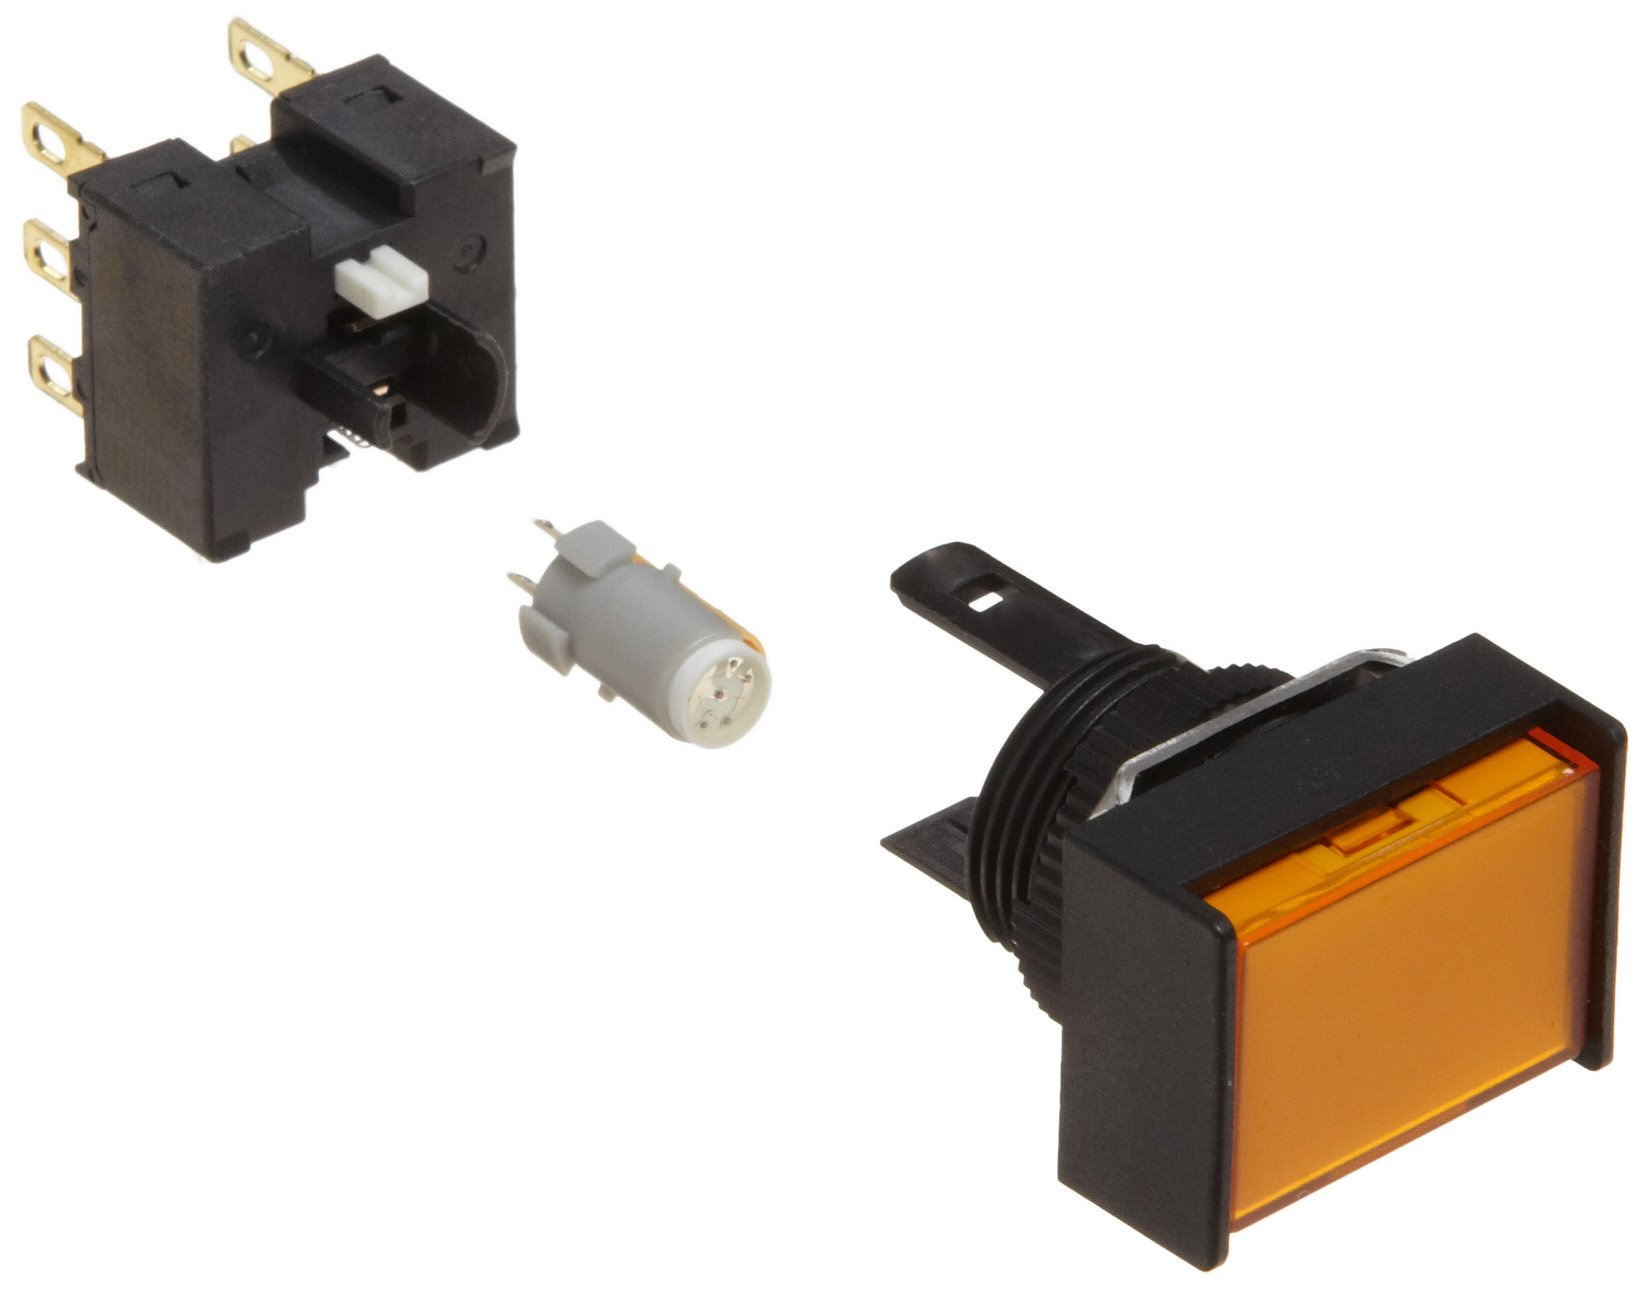 Omron A165L-JYA-24D-2 Two Way Guard Type Pushbutton and Switch, Solder Terminal, IP65 Oil-Resistant, 16mm Mounting Aperture, LED Lighted, Alternate Operation, Rectangular, Yellow, 24 VDC Rated Voltage, Double Pole Double Throw Contacts